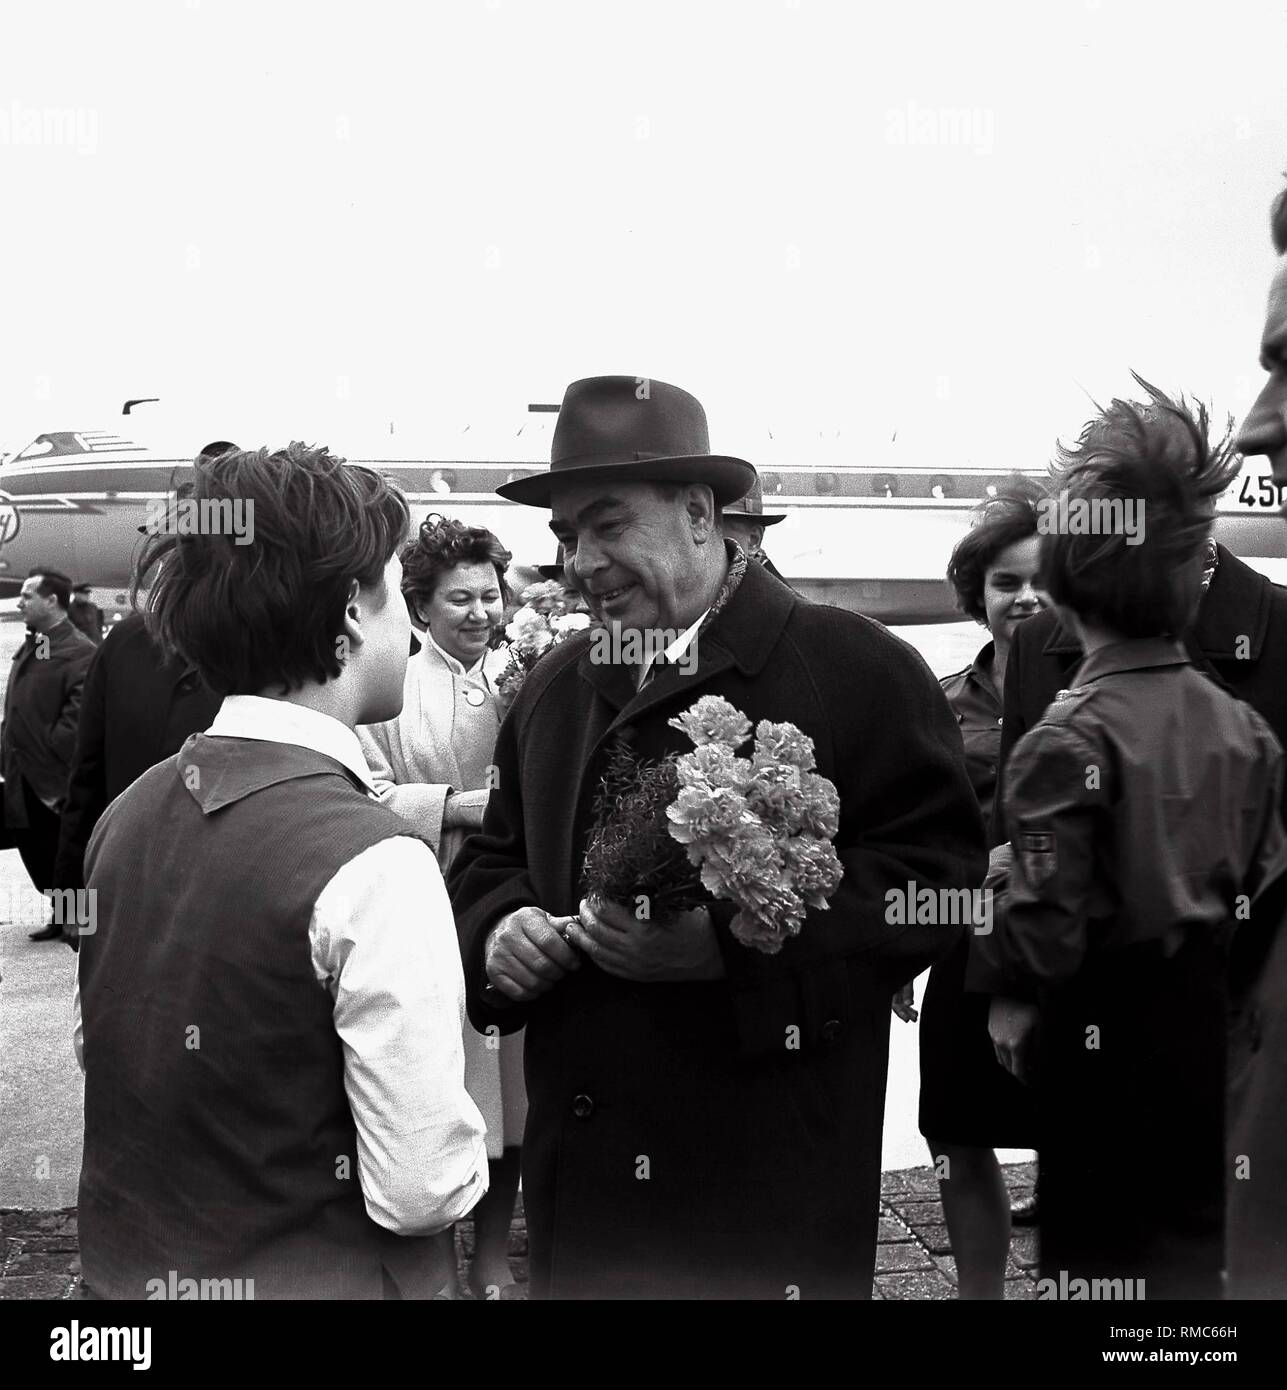 The General Secretary of the CPSU, Leonid Brezhnev, at the airport in Erfurt. - Stock Image